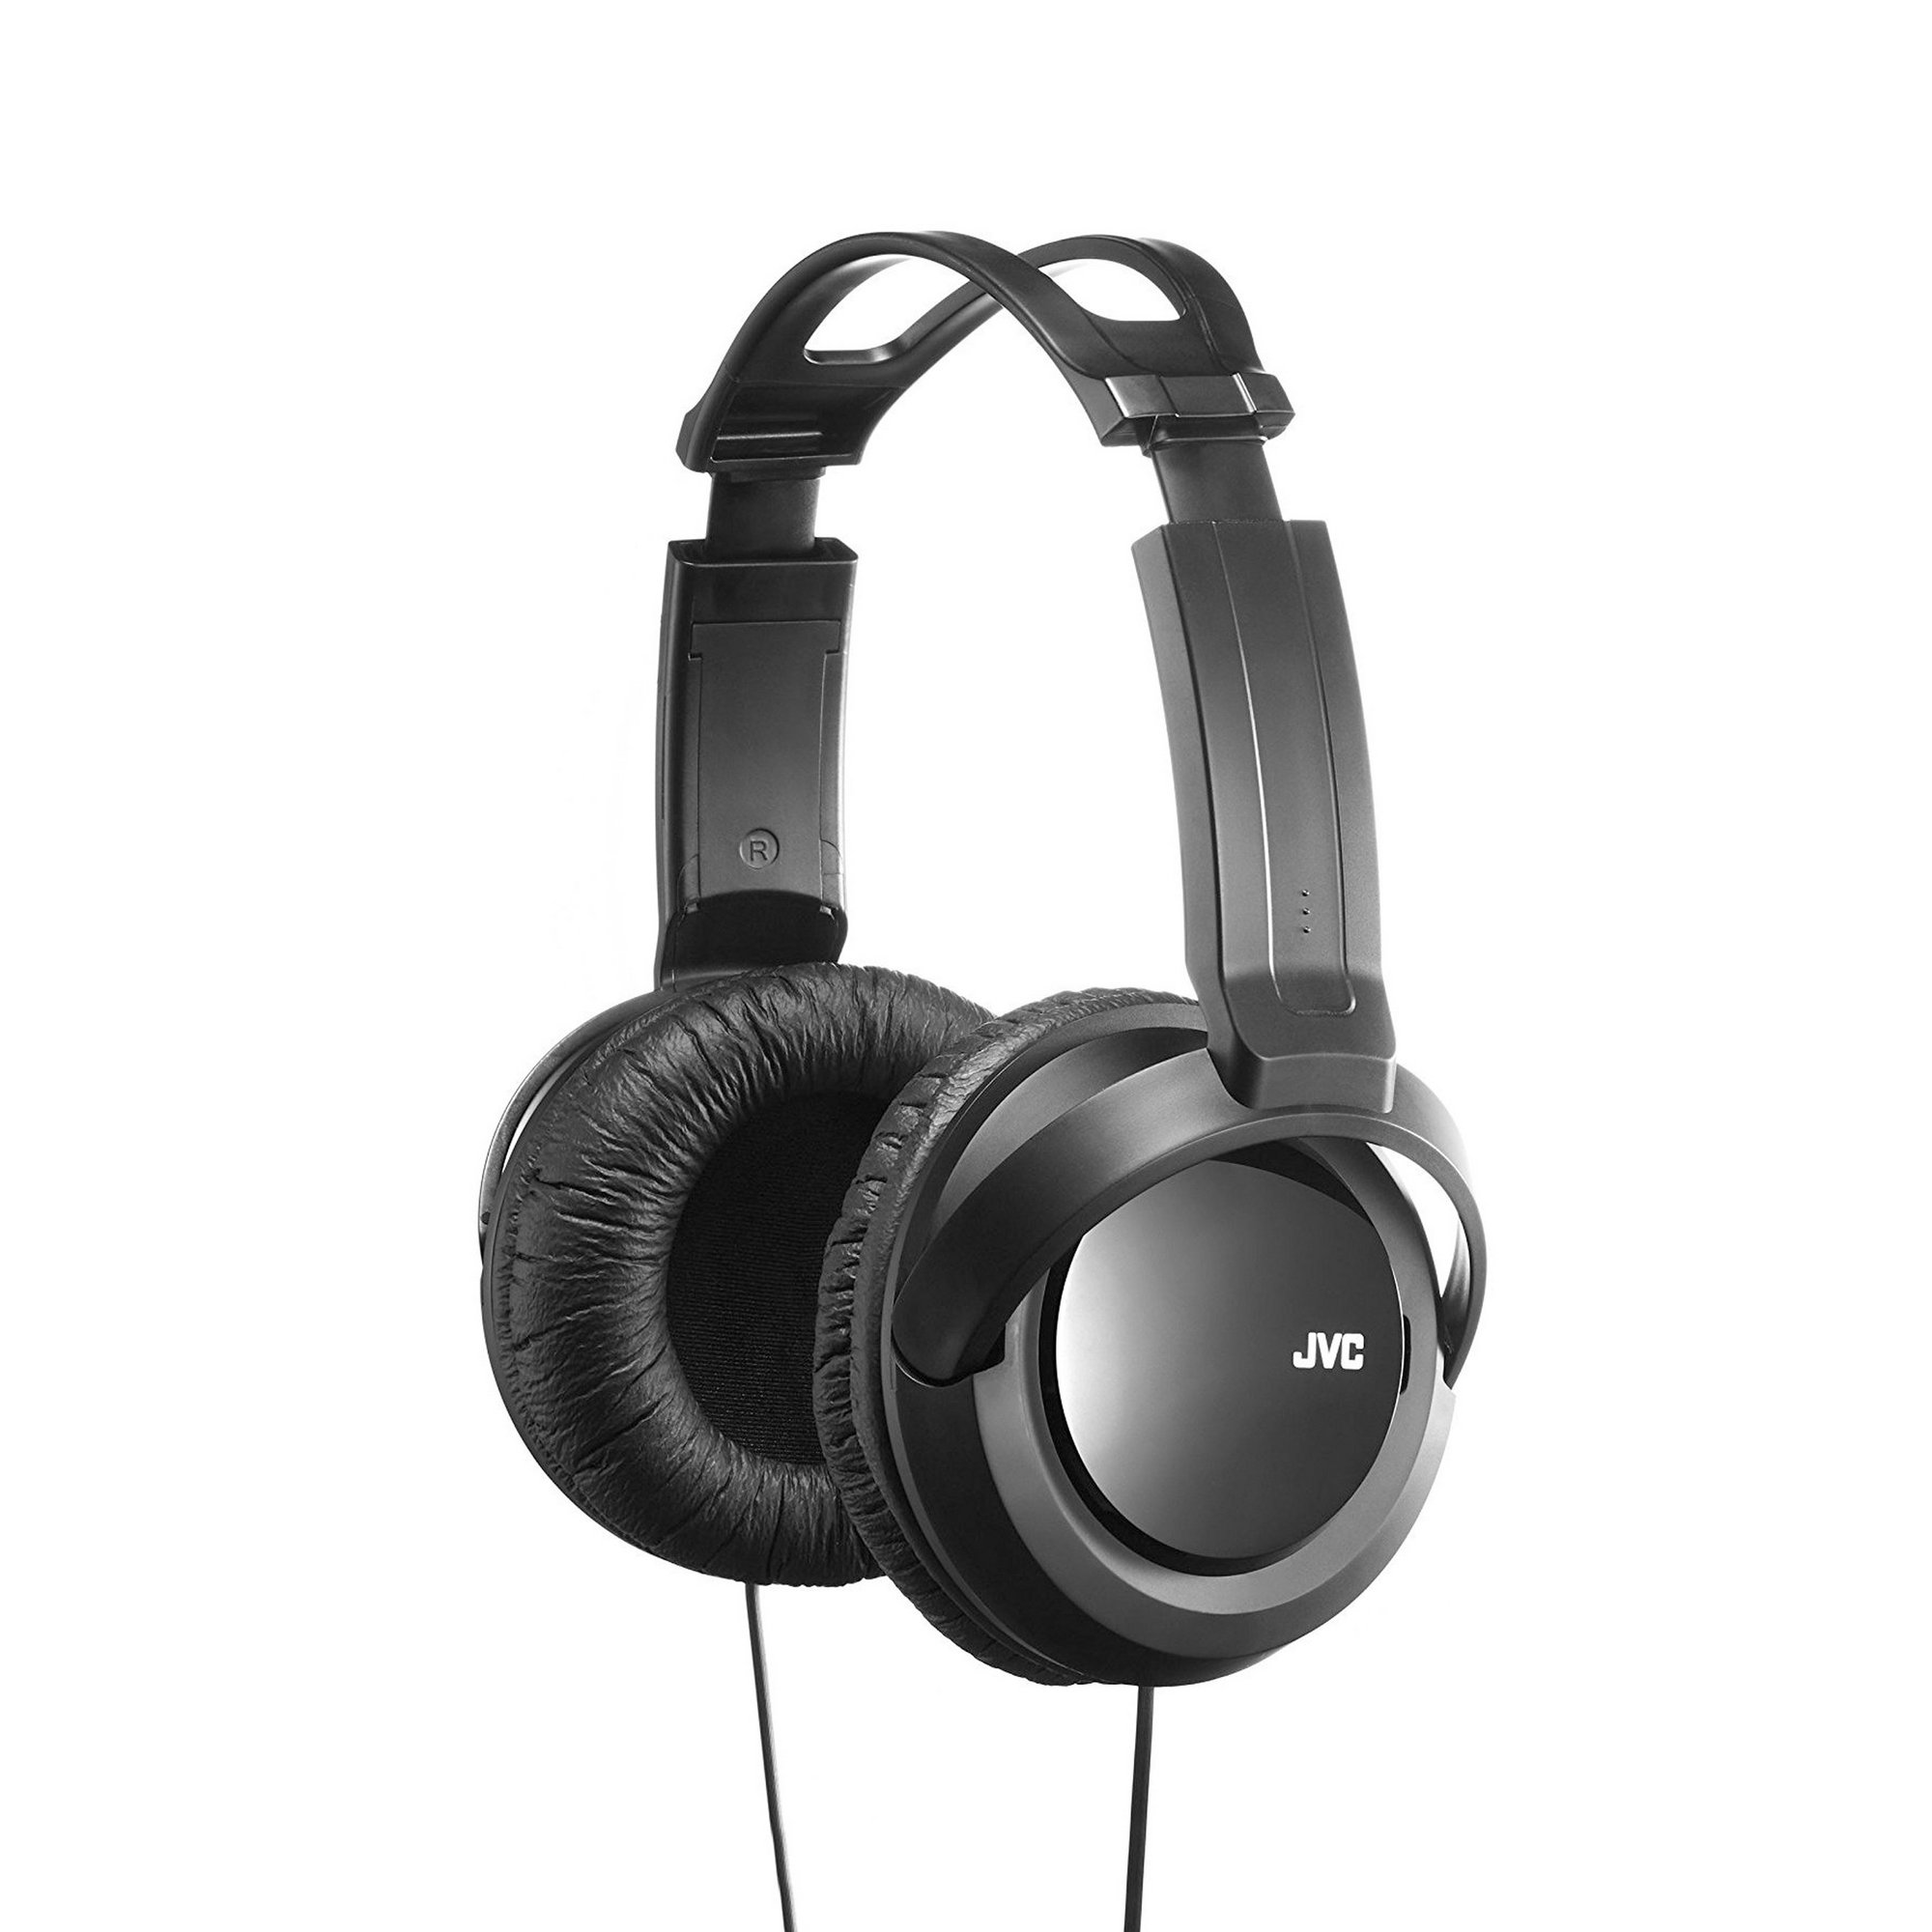 Image of JVC Stereo Headphones